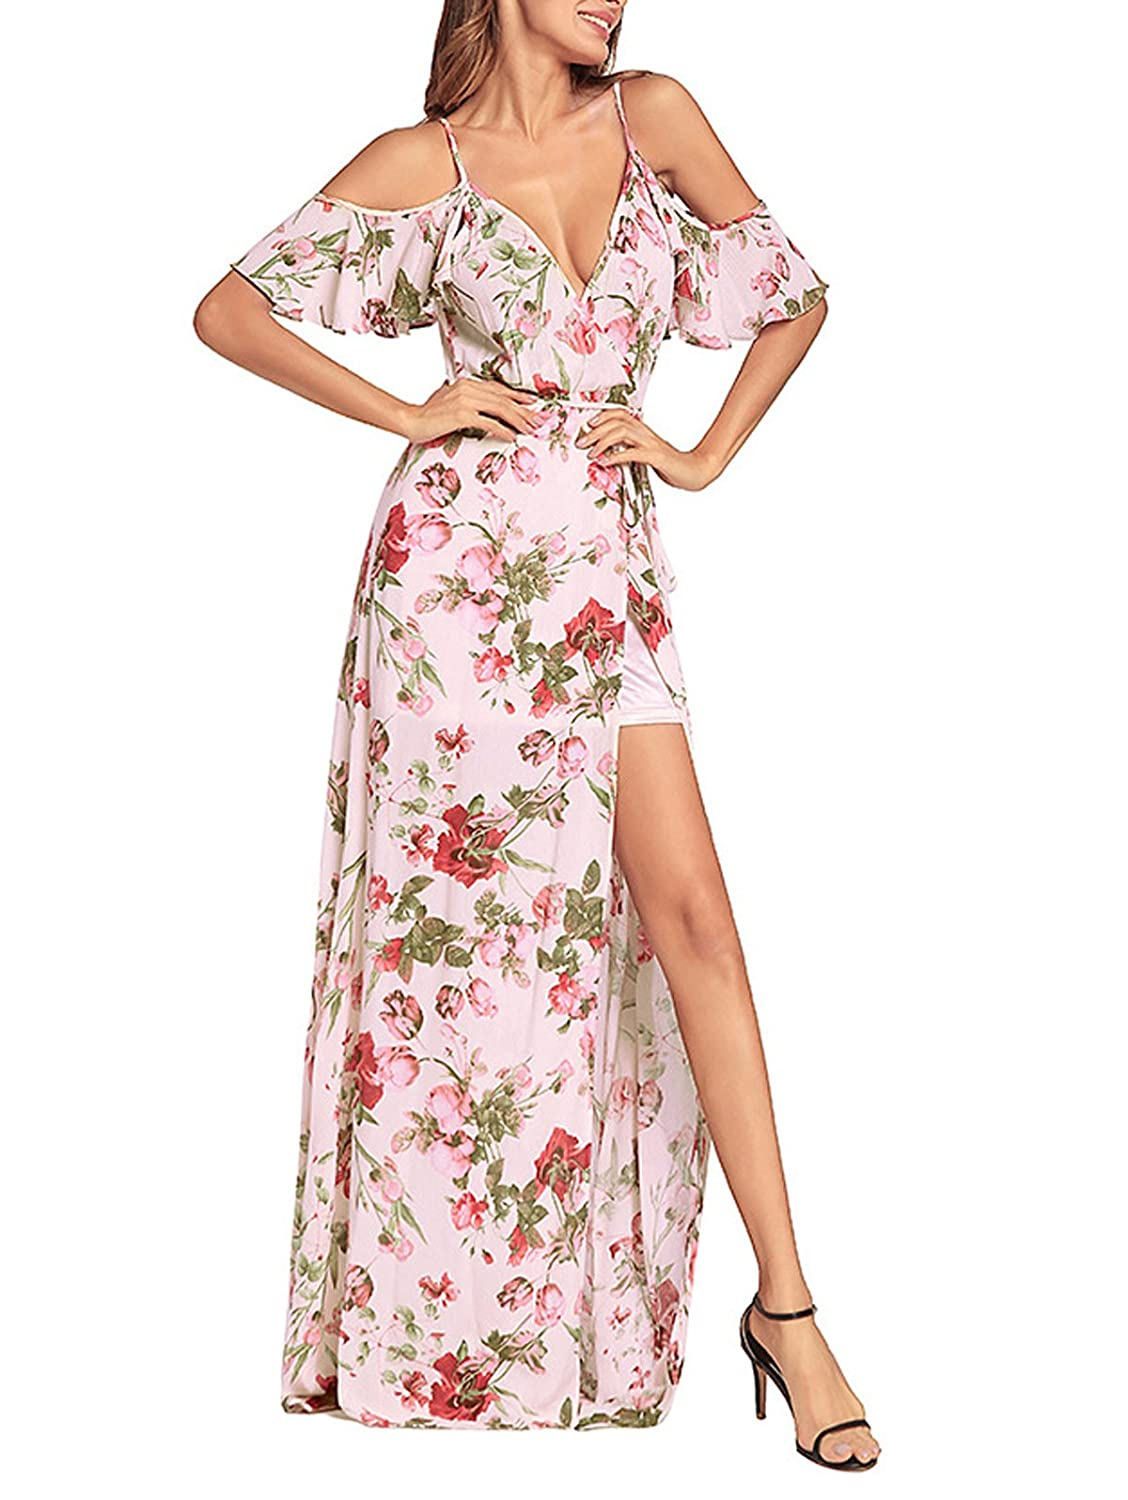 a8923228db9 Amazon.com  SHIBEVER Women s Summer Floral Maxi Dress Boho High Slit Cold  Shoulder Wrap Long Dresses Pink 2XL  Clothing